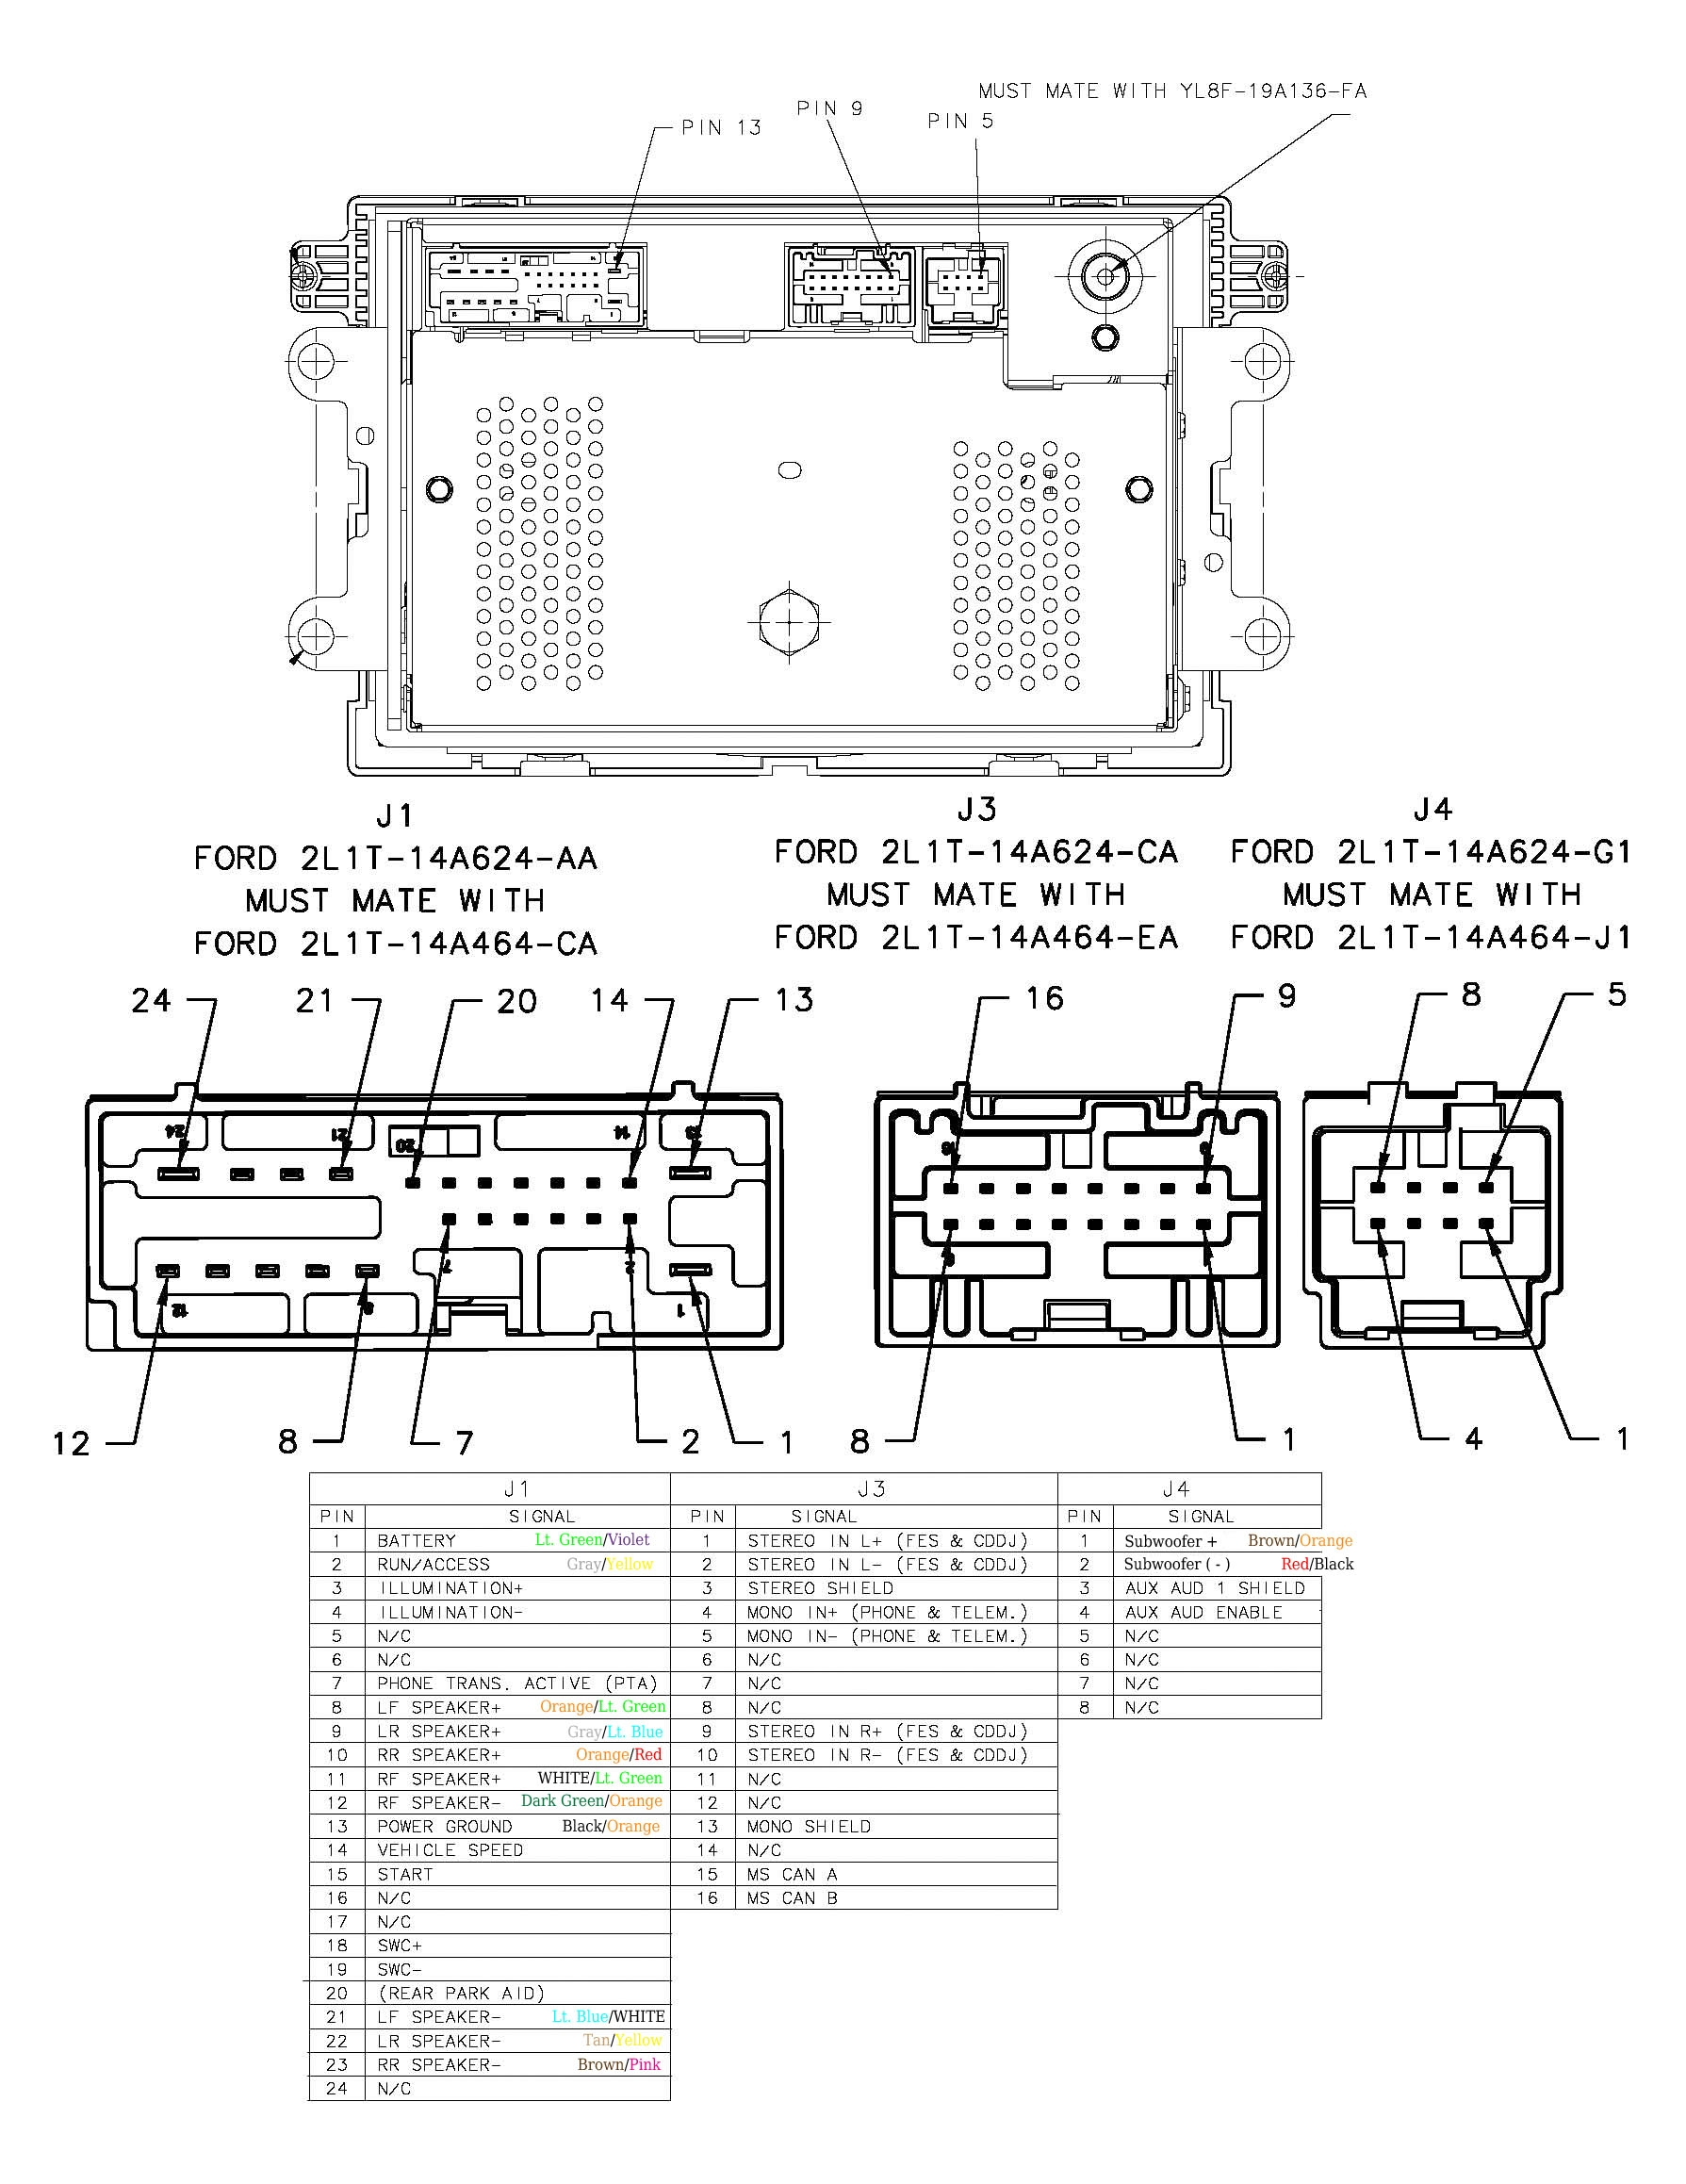 1999 Ford Mustang Radio Wiring Diagram - Collection ...